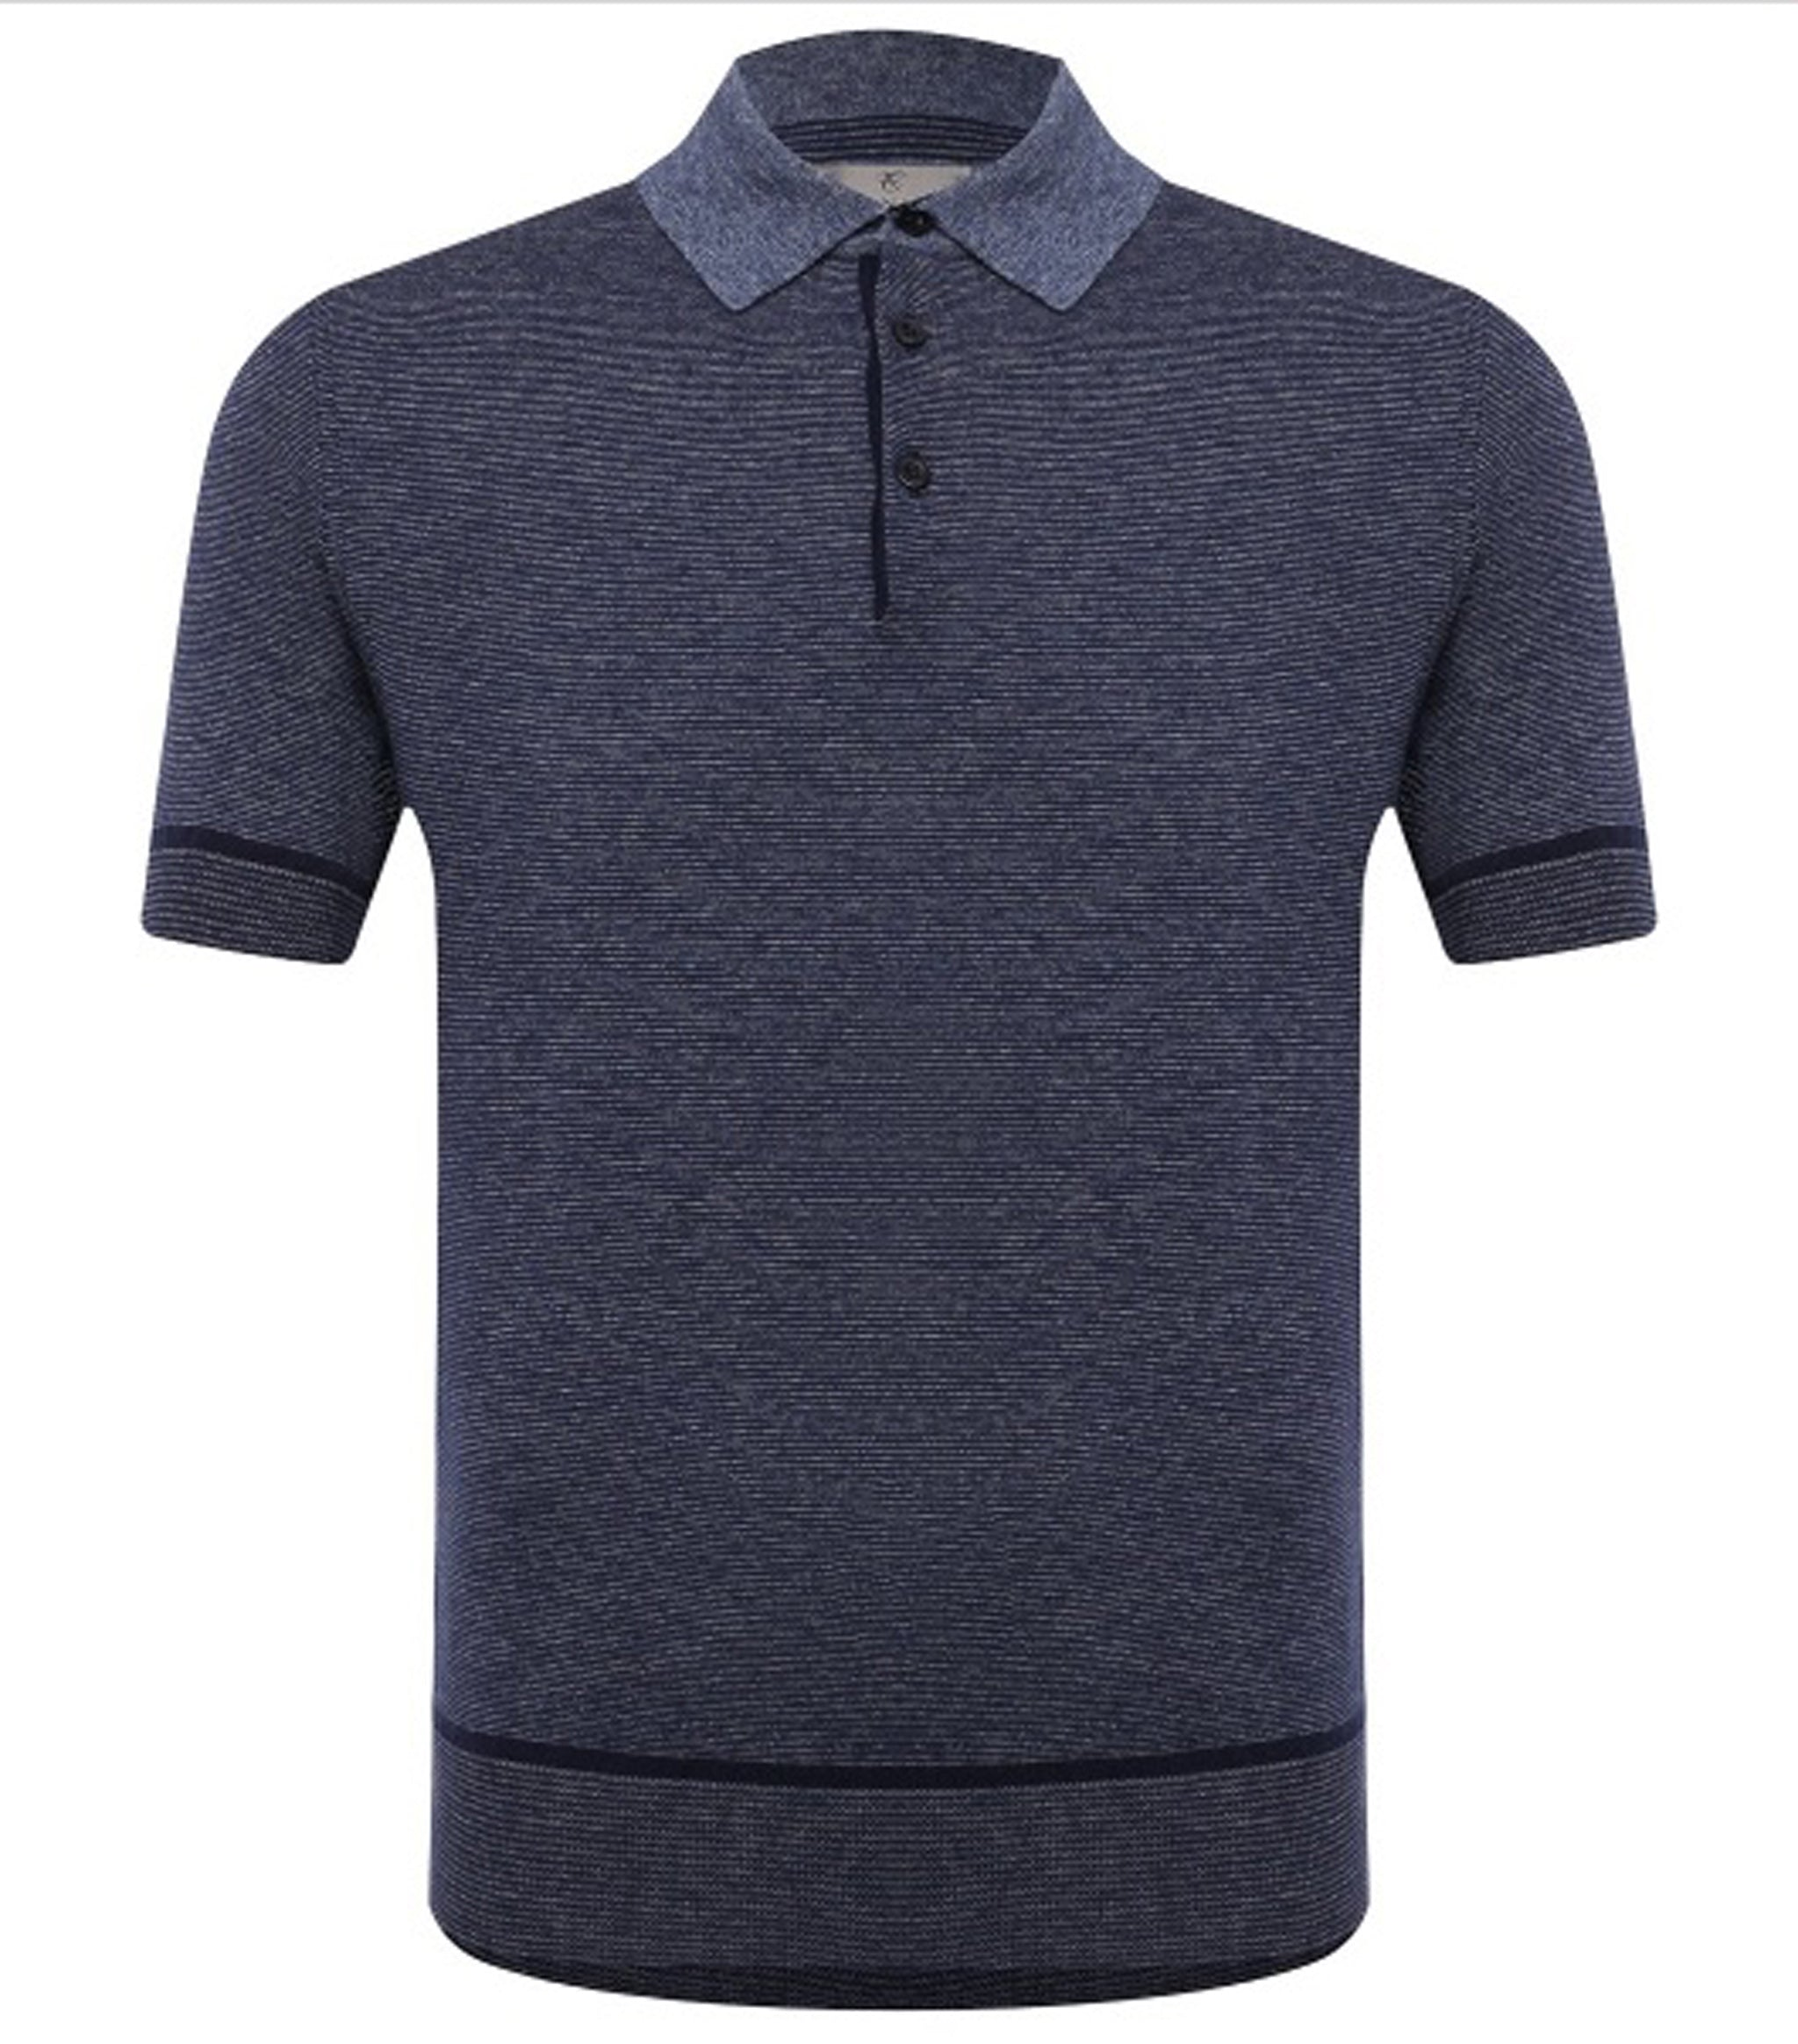 Canali - Navy Blue Knitted Polo Shirt with Contrast Collar C0780 MK01140/300